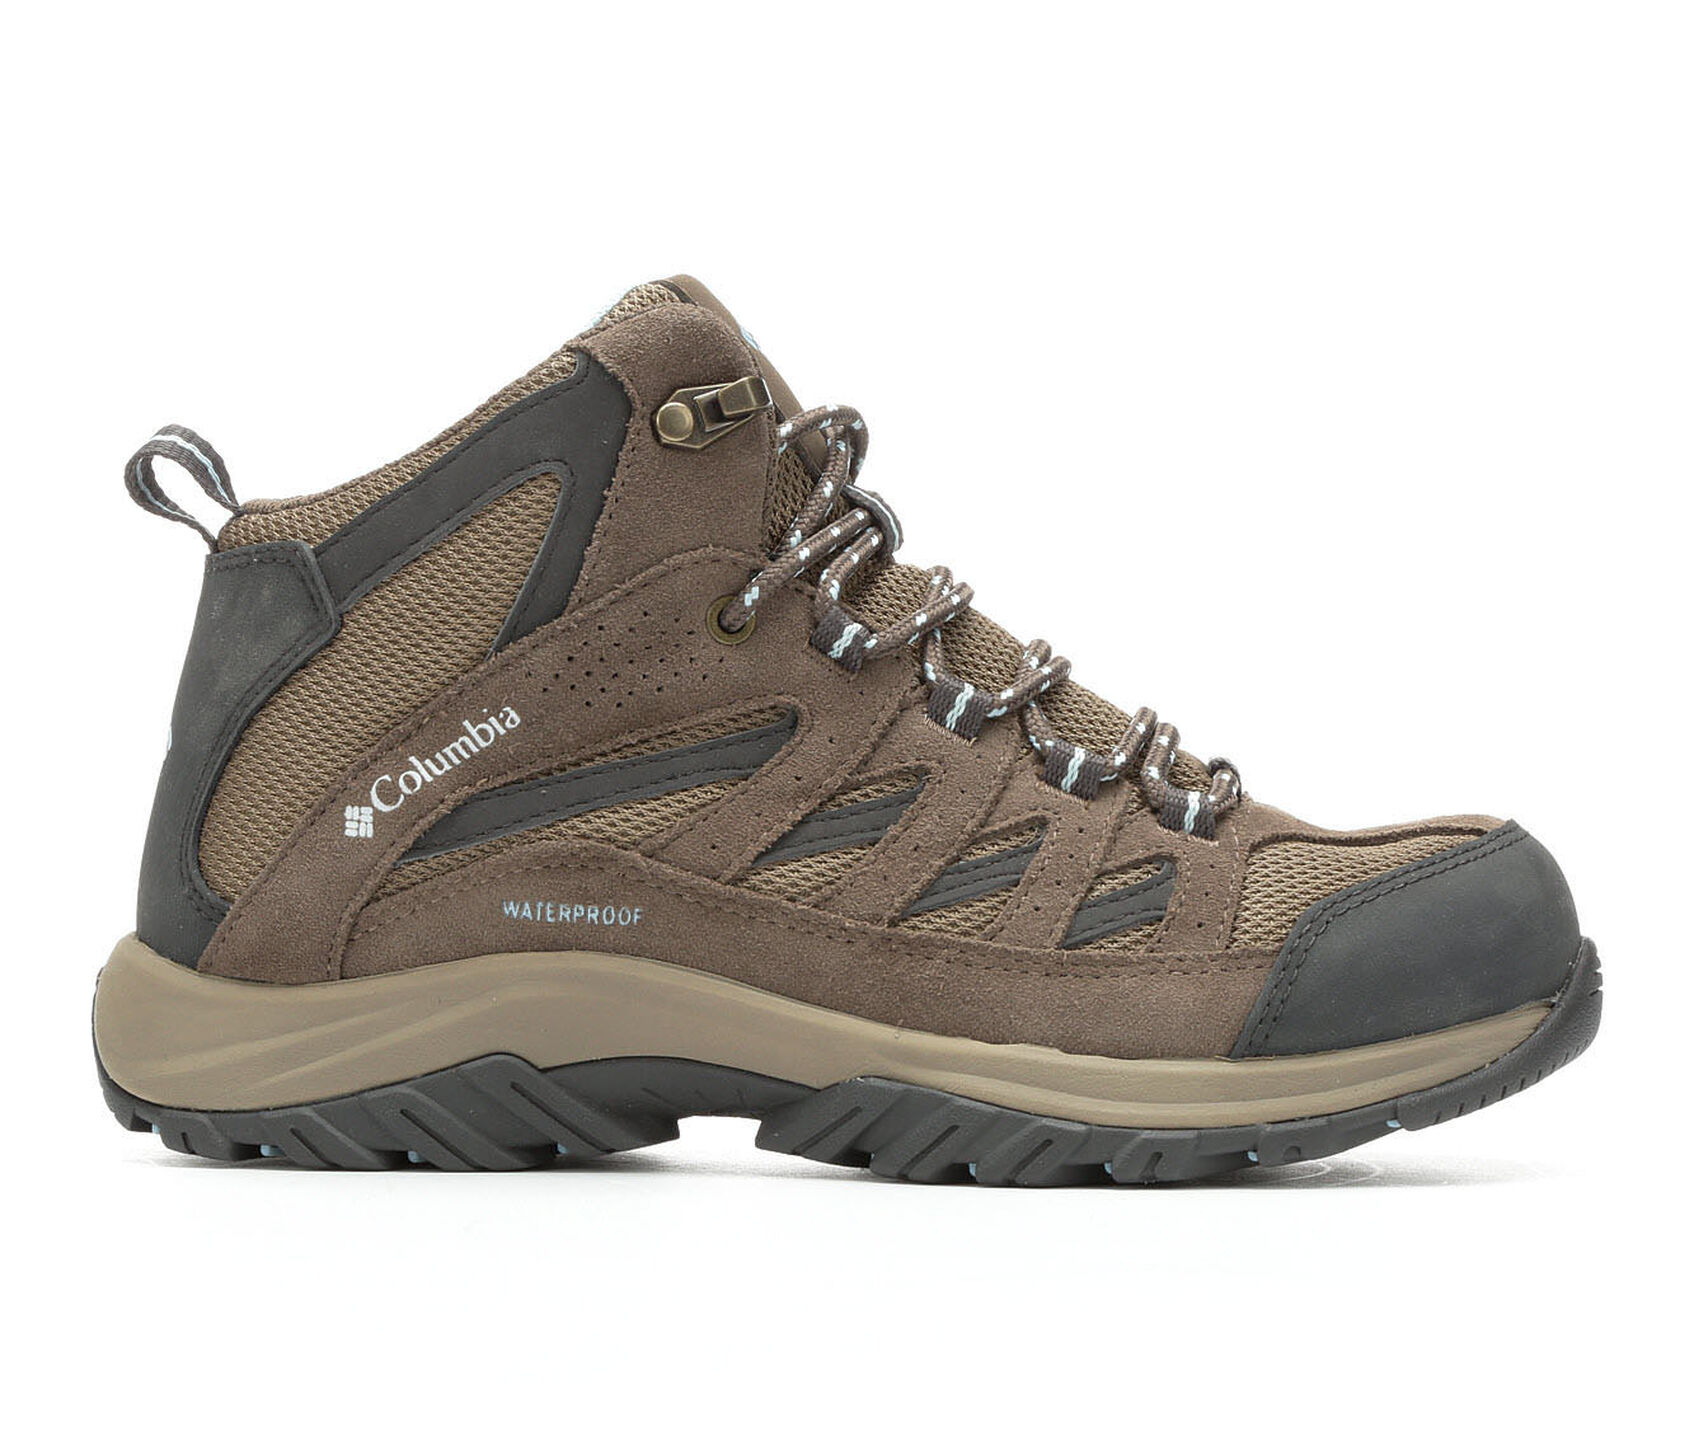 a996e616430 Women's Columbia Crestwood Mid WP Hiking Boots